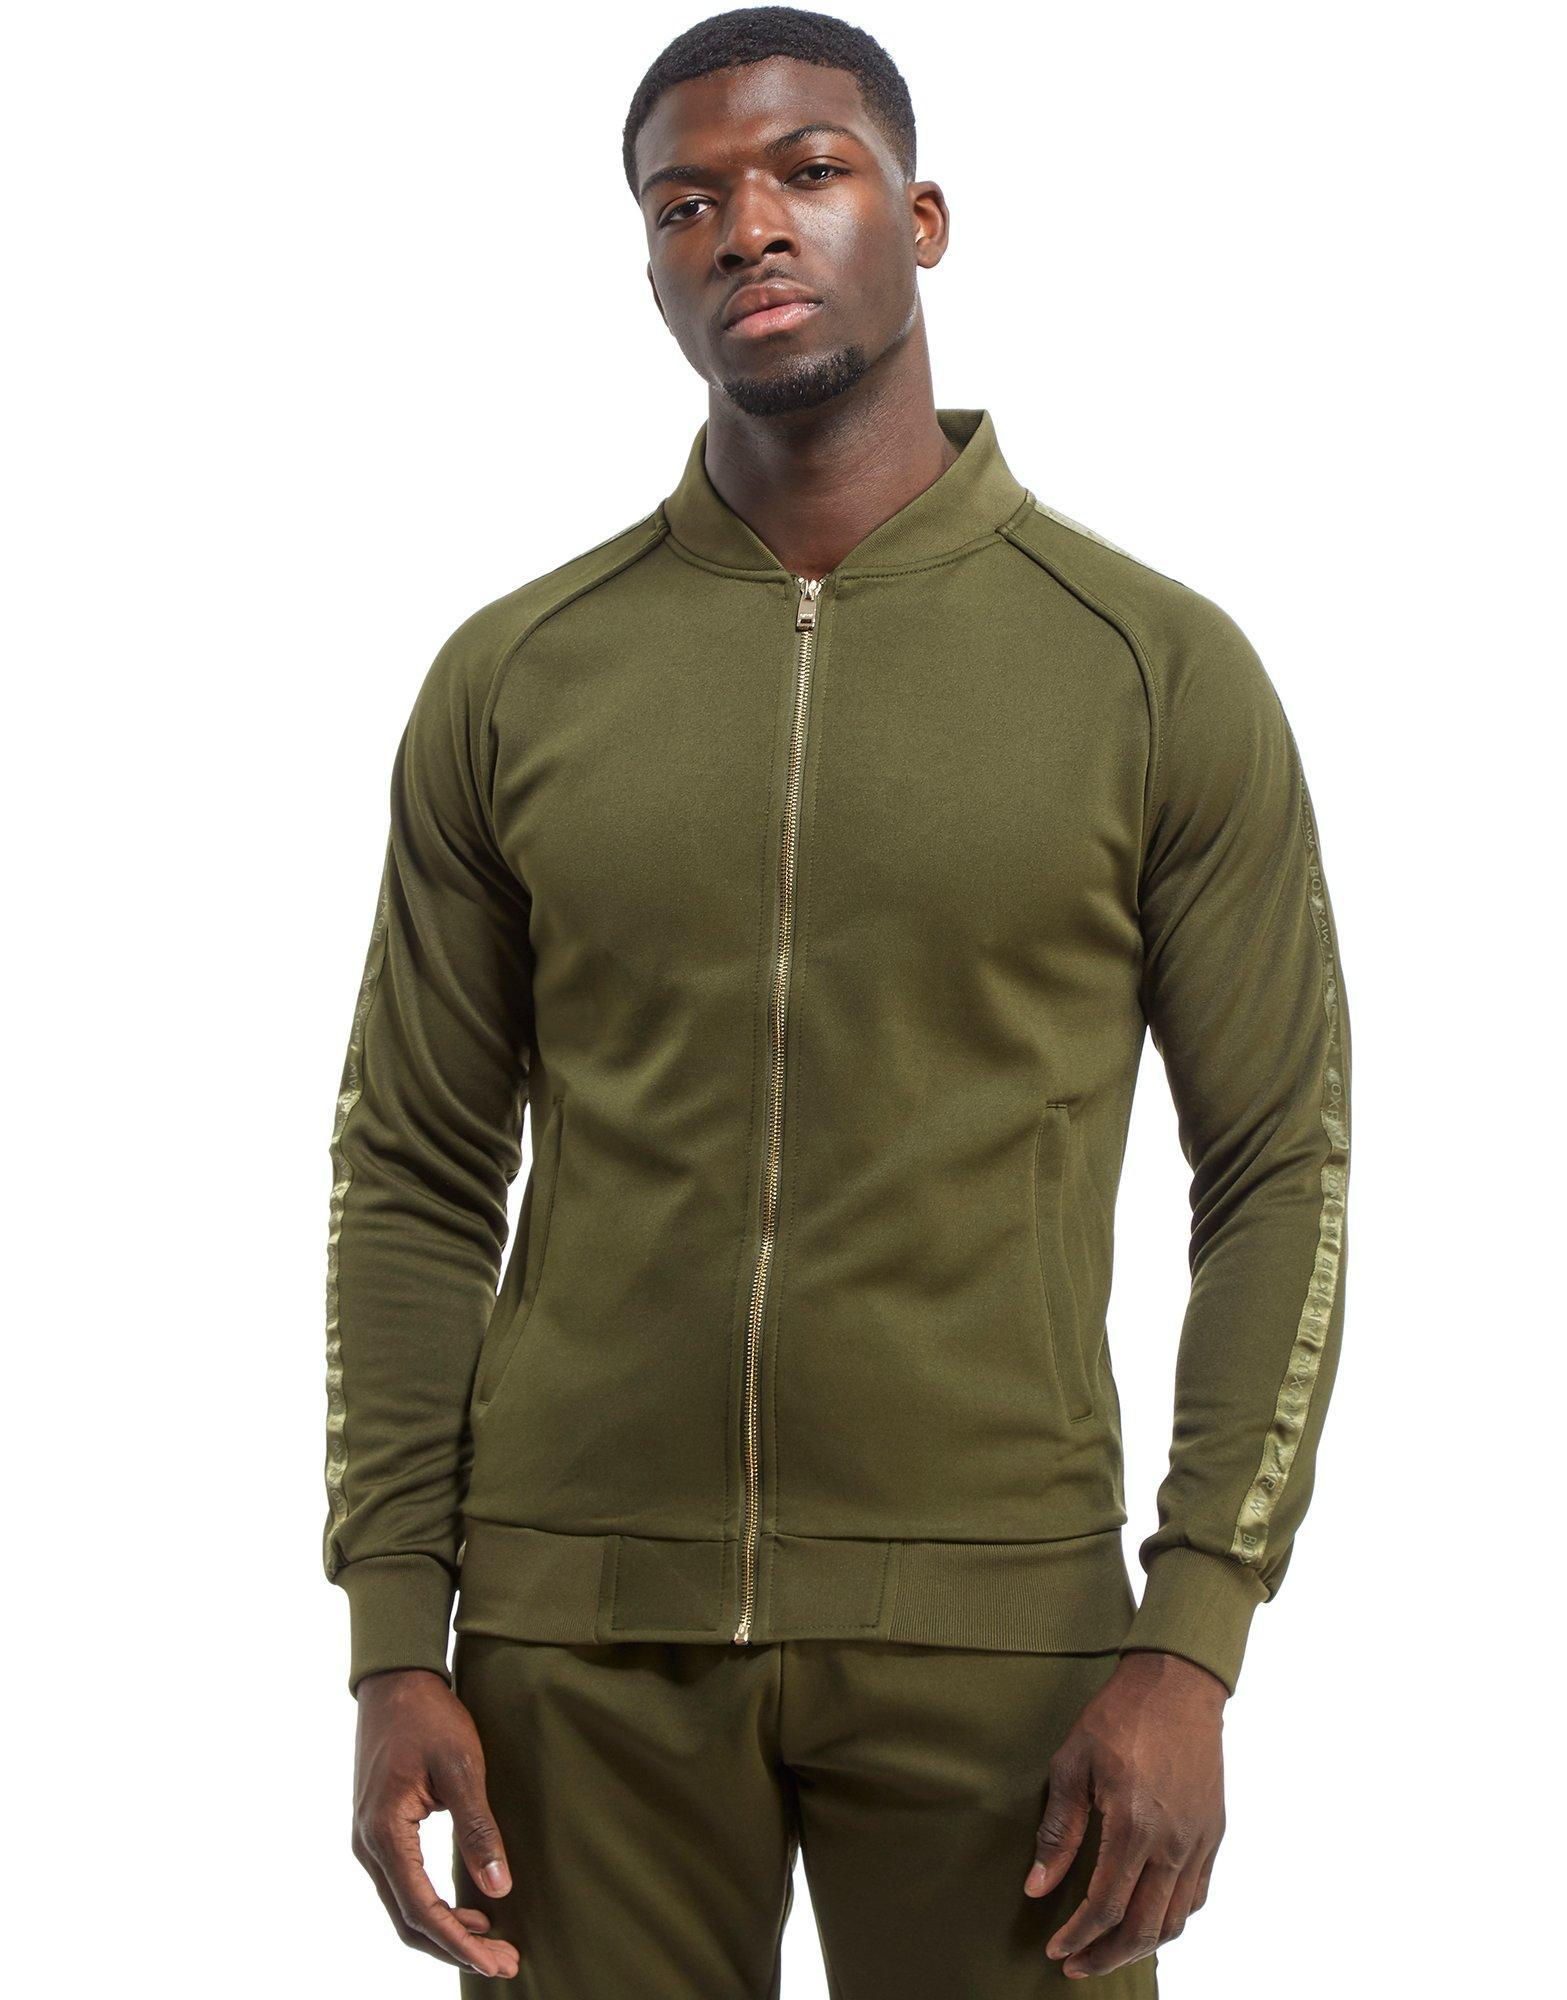 Mens Withaker Basic Stret Casual Shirt Calvin Klein Big Discount Deals Sale Online New Arrival Clearance Best Store To Get Release Dates Cheap Online GLd8Jm4